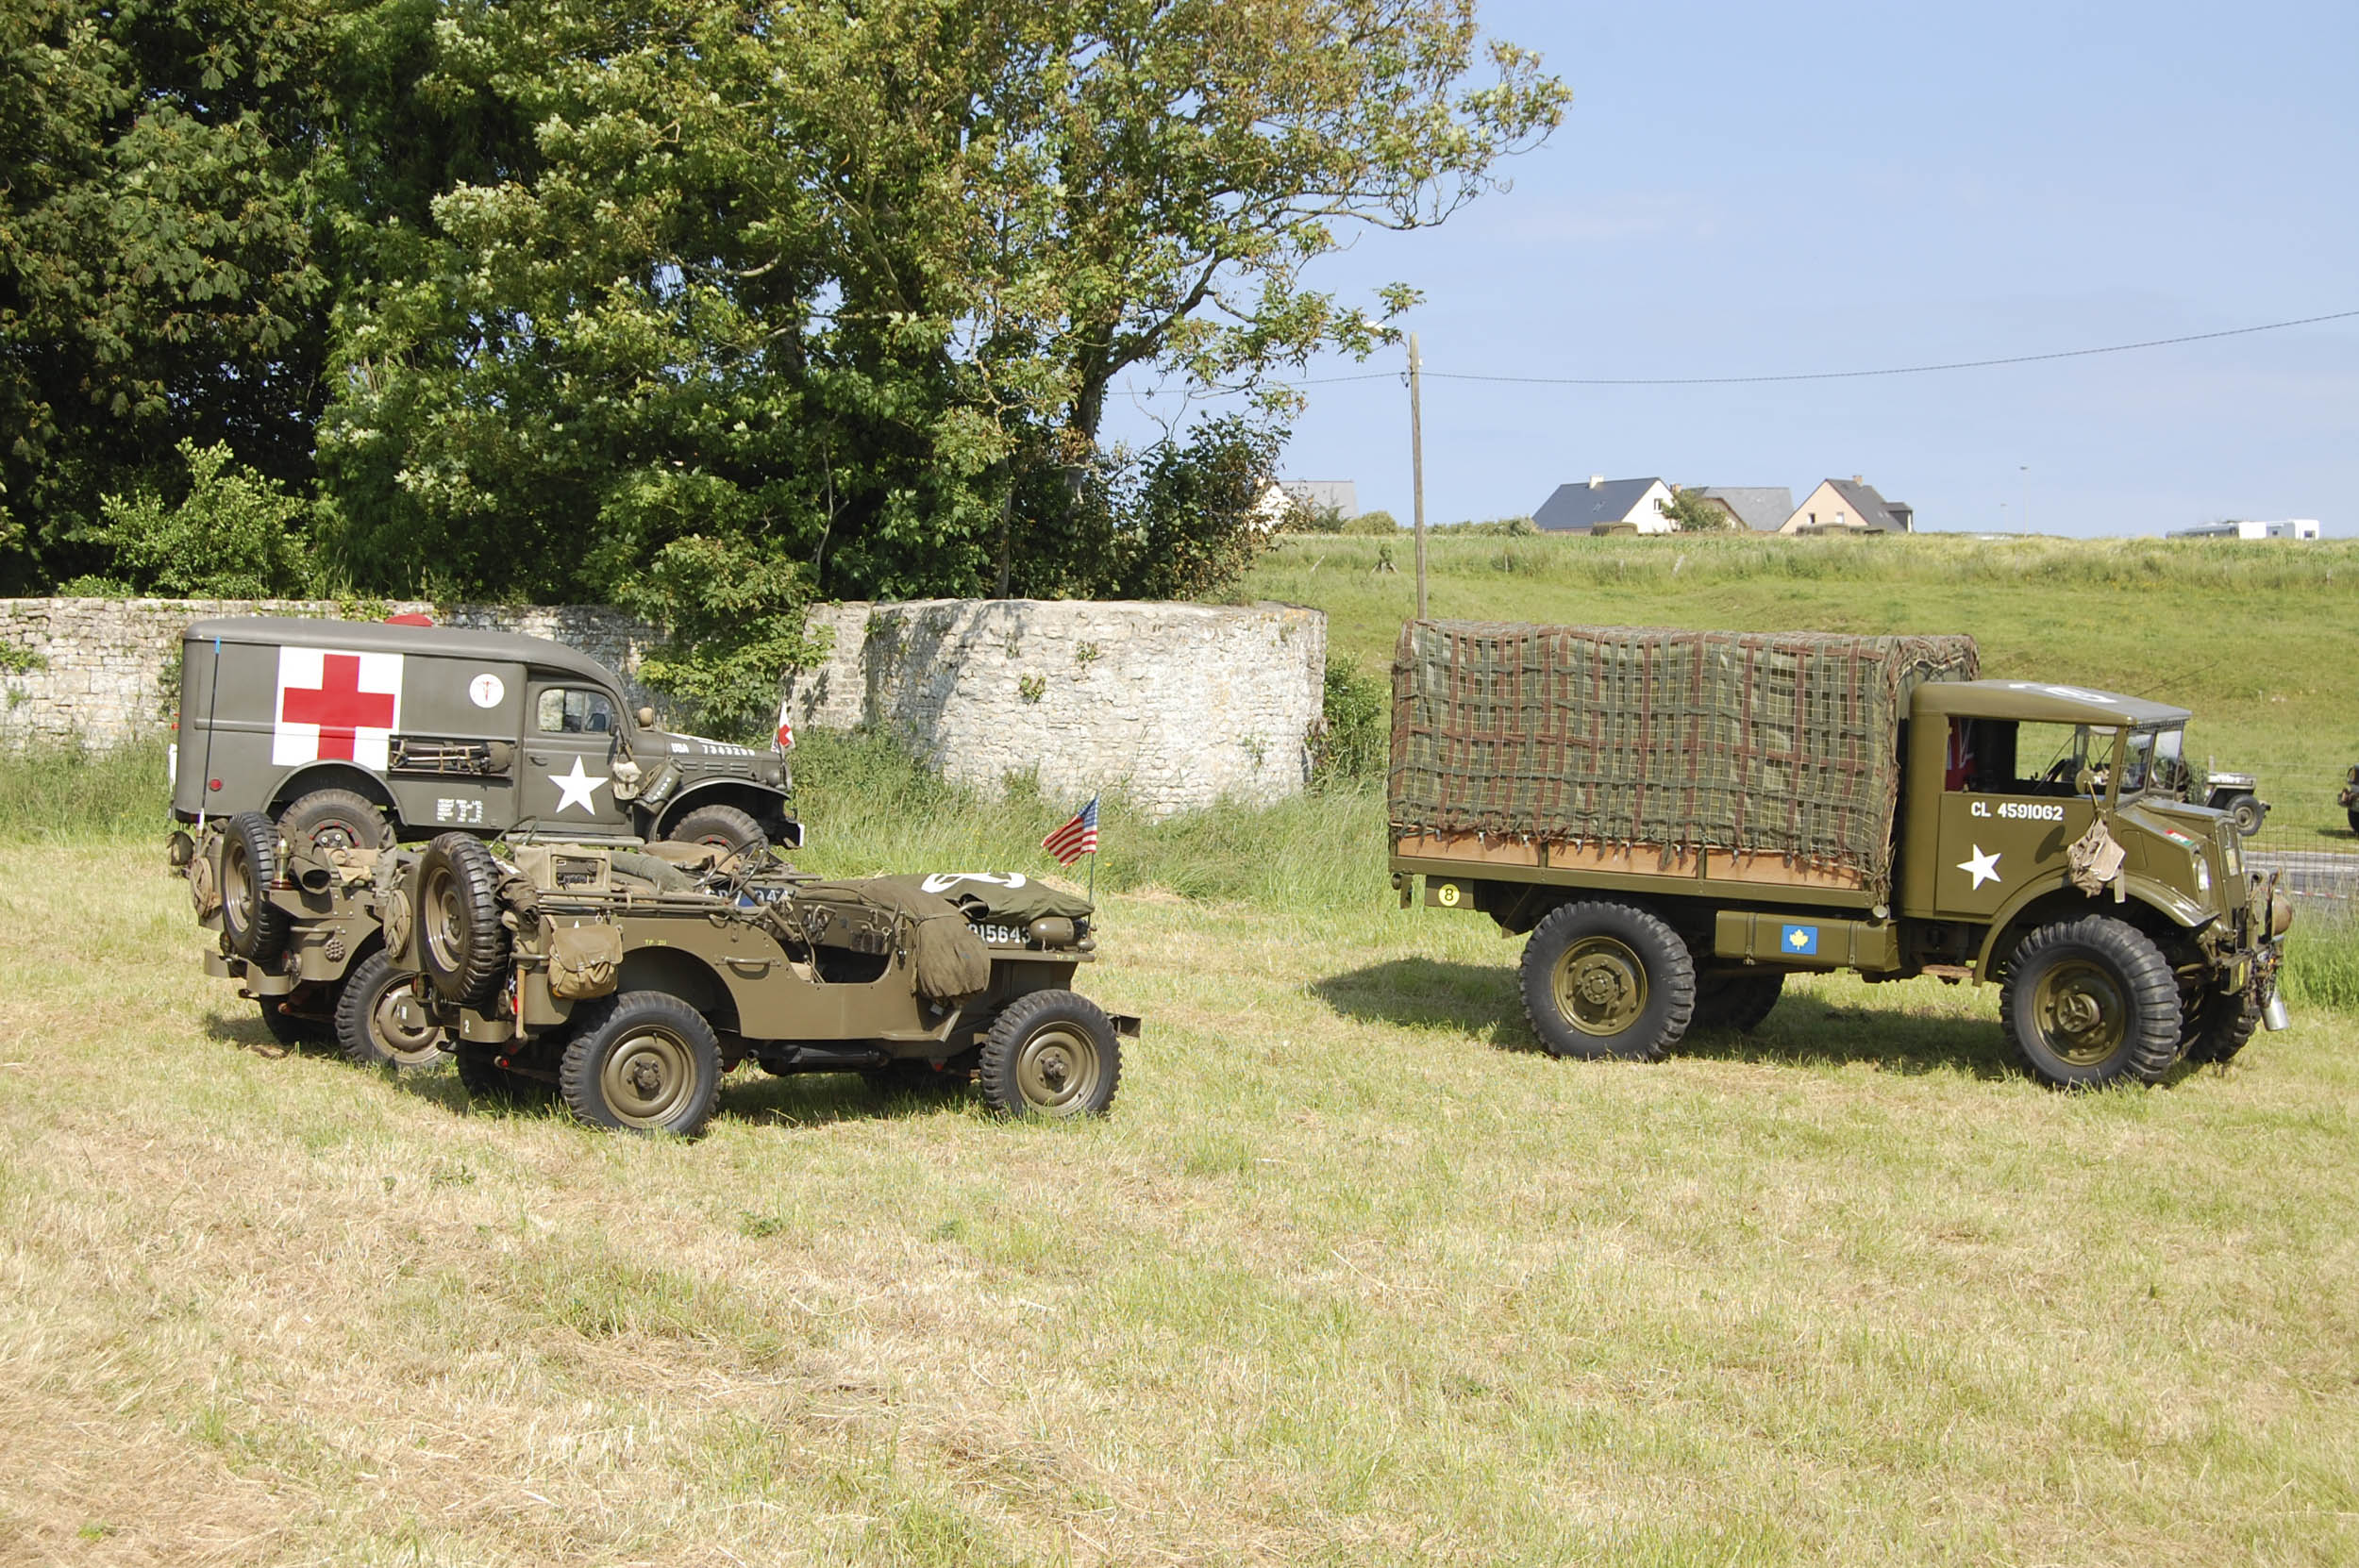 WW2 Jeep, Dodge WC54 ambulance and a Ford CMP cargo truck from WW2.